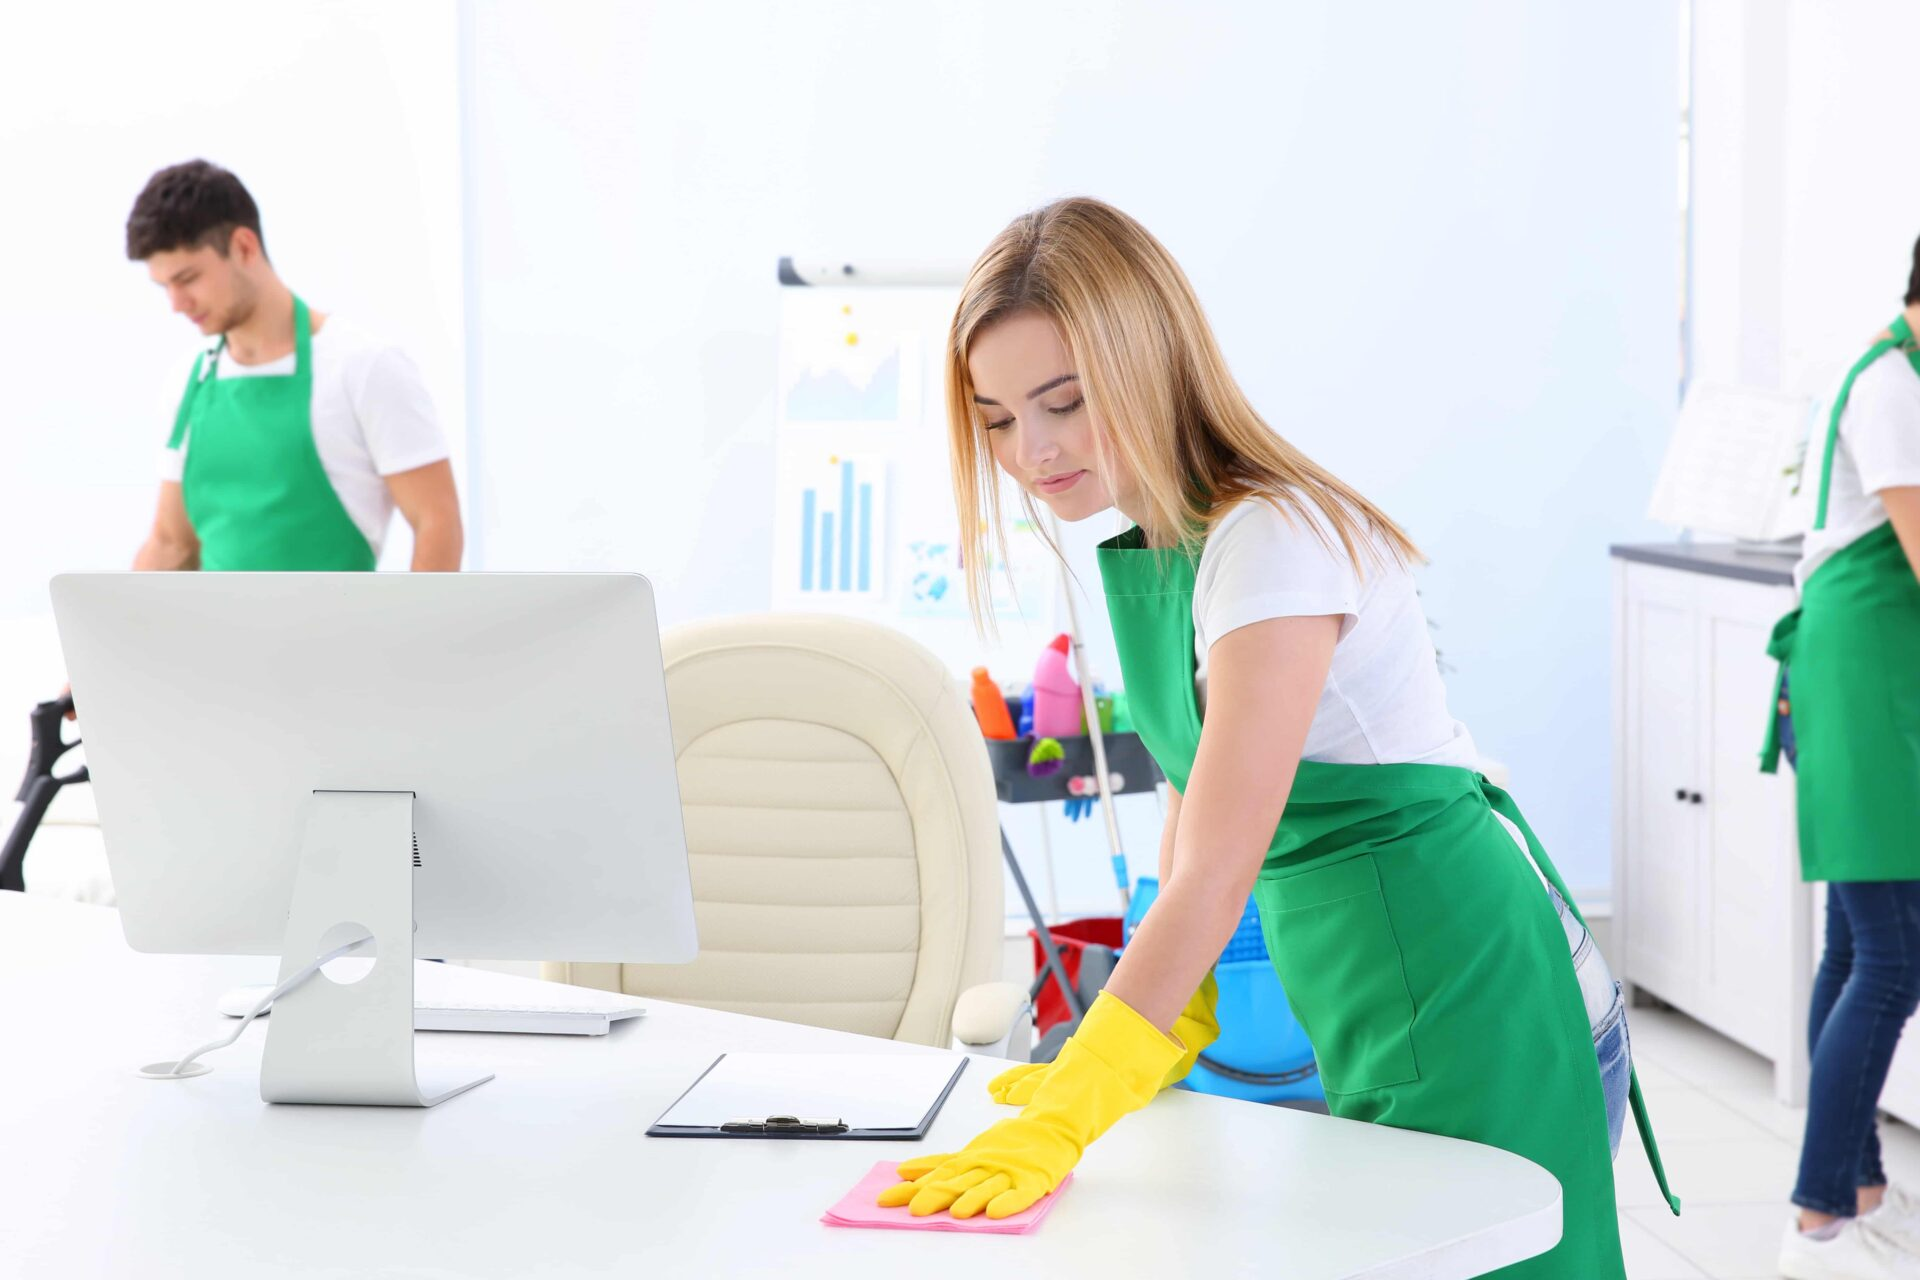 Is an unhygienic office bad for business